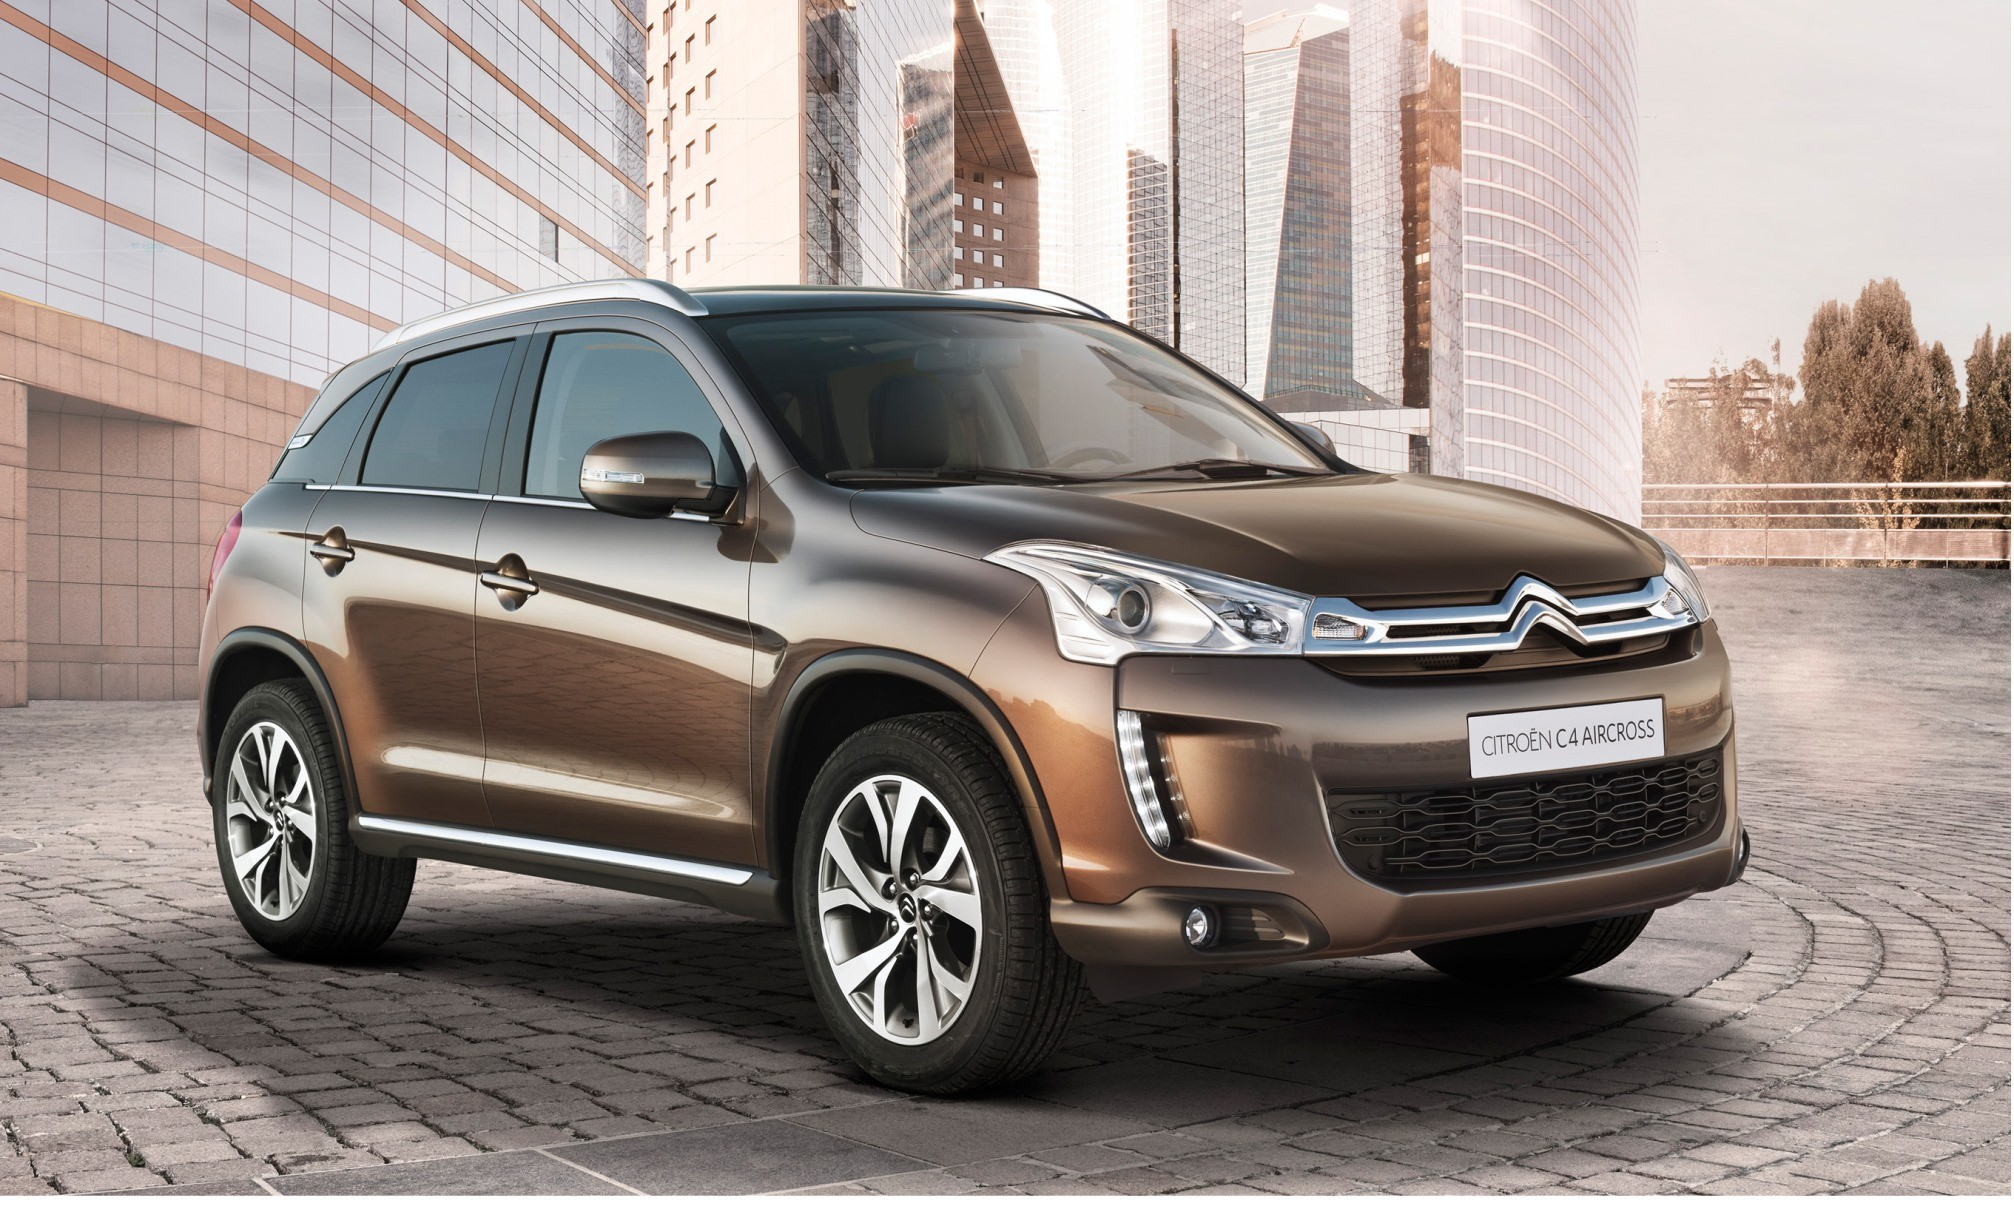 Citroen C4 Aircross 2.0i 4x2 Seduction